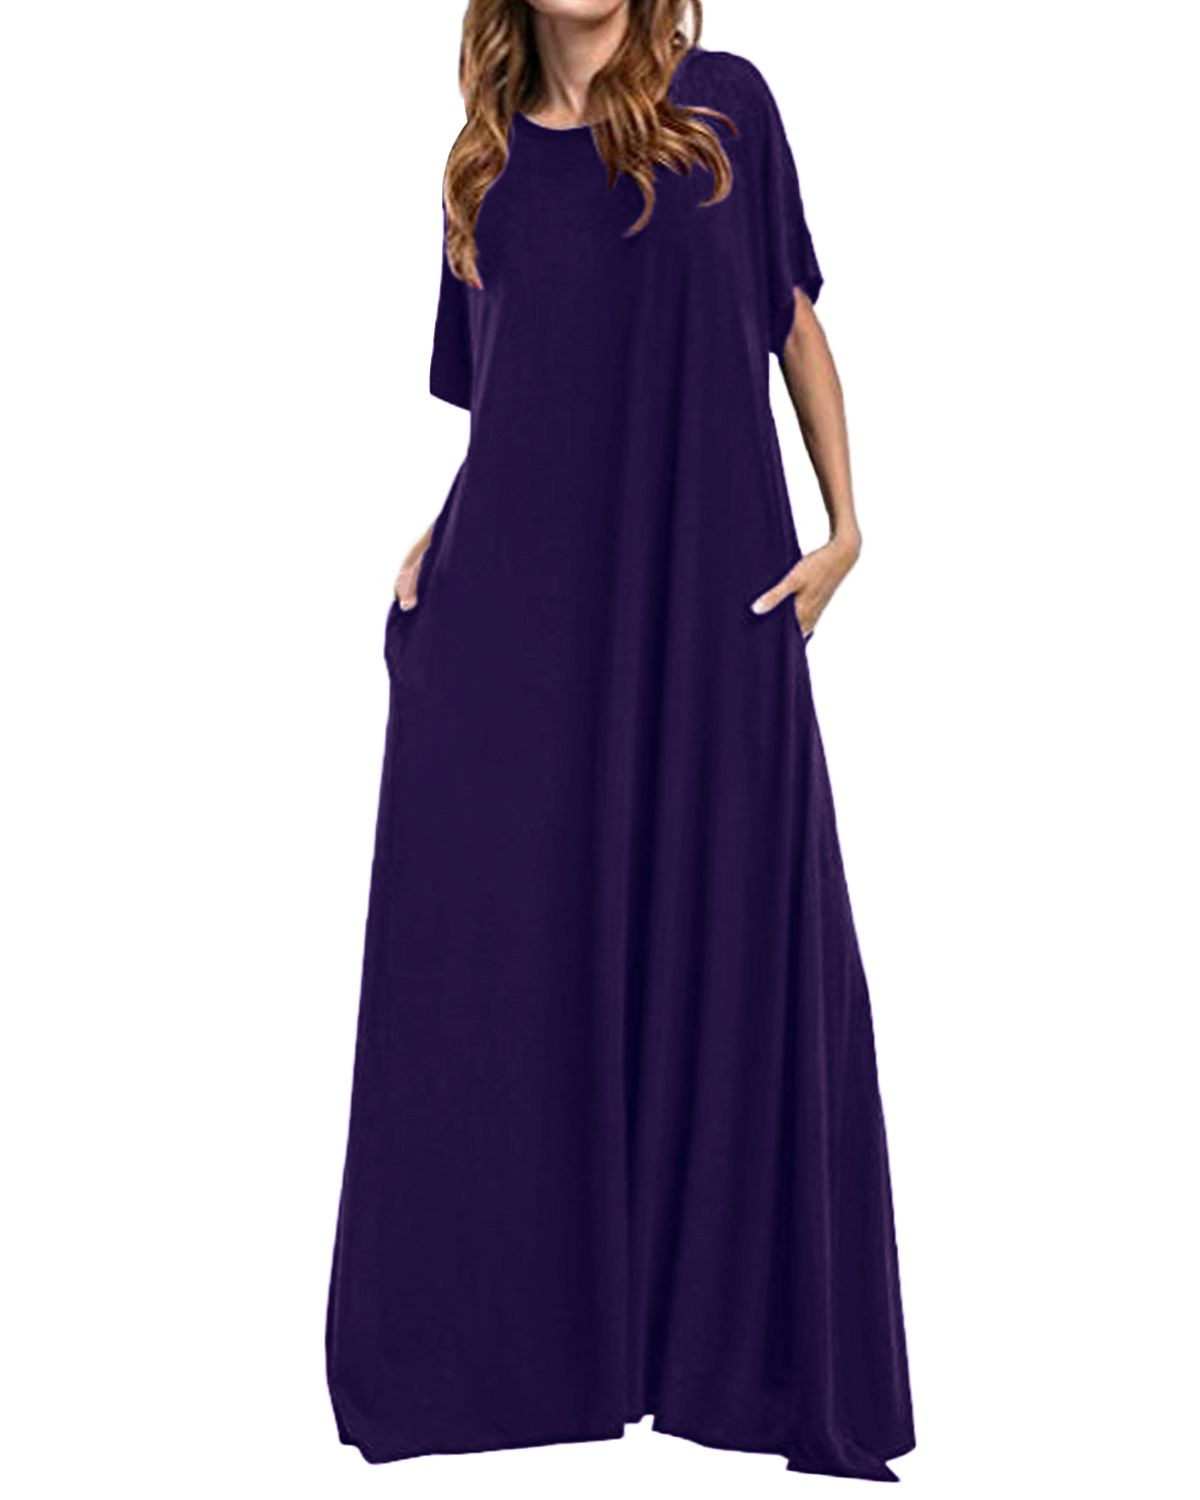 Women Half Sleeve Solid Round Neck Long Maxi Dress ZANZEA 2019 Casual Loose Long Elegant Robe Bodycon Dresses Vestidos Plus Size 1